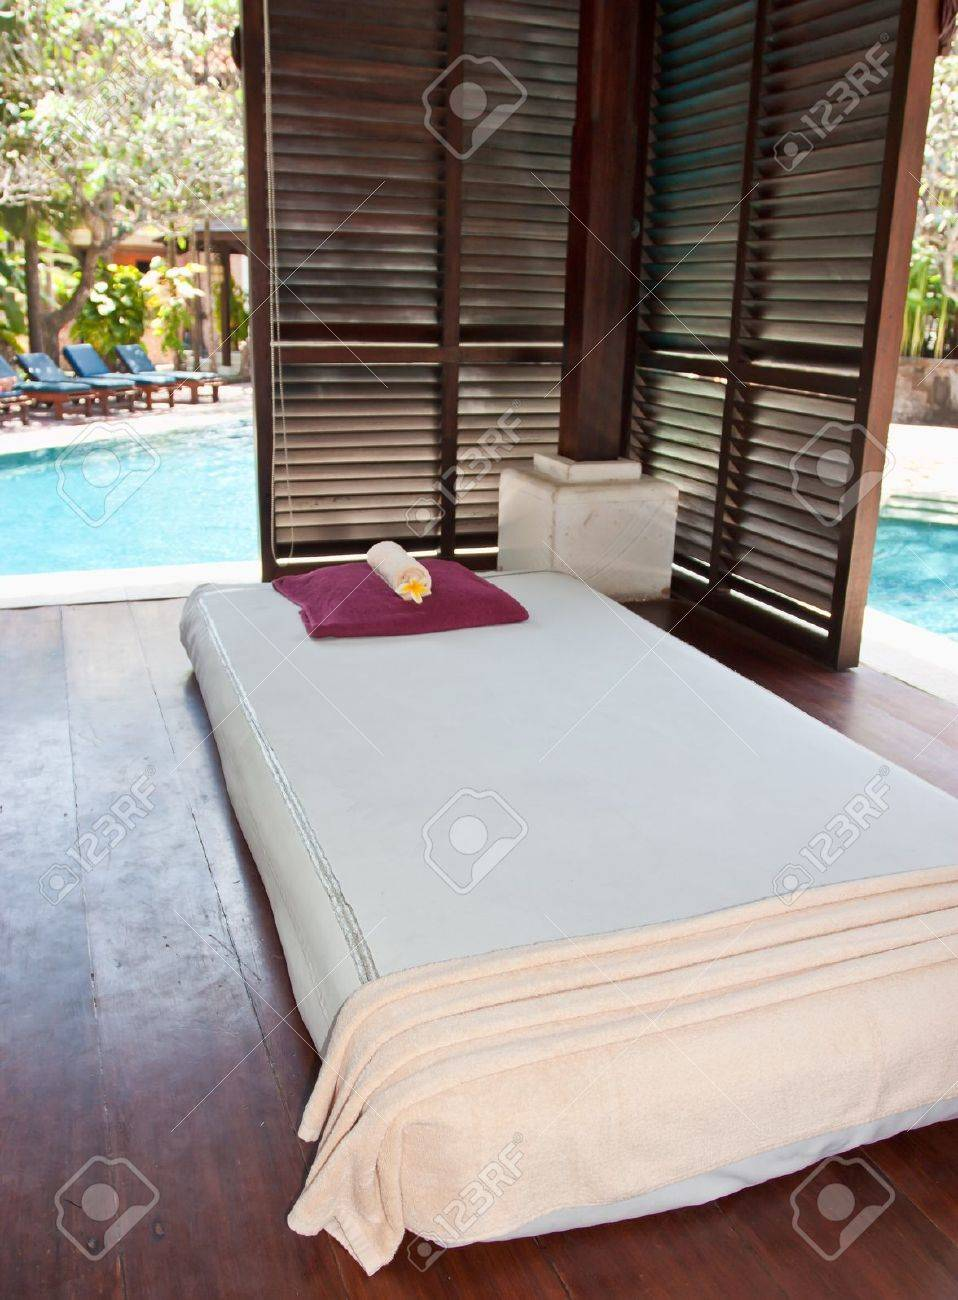 Beds for thai massage with pillows on them Stock Photo - 10668859